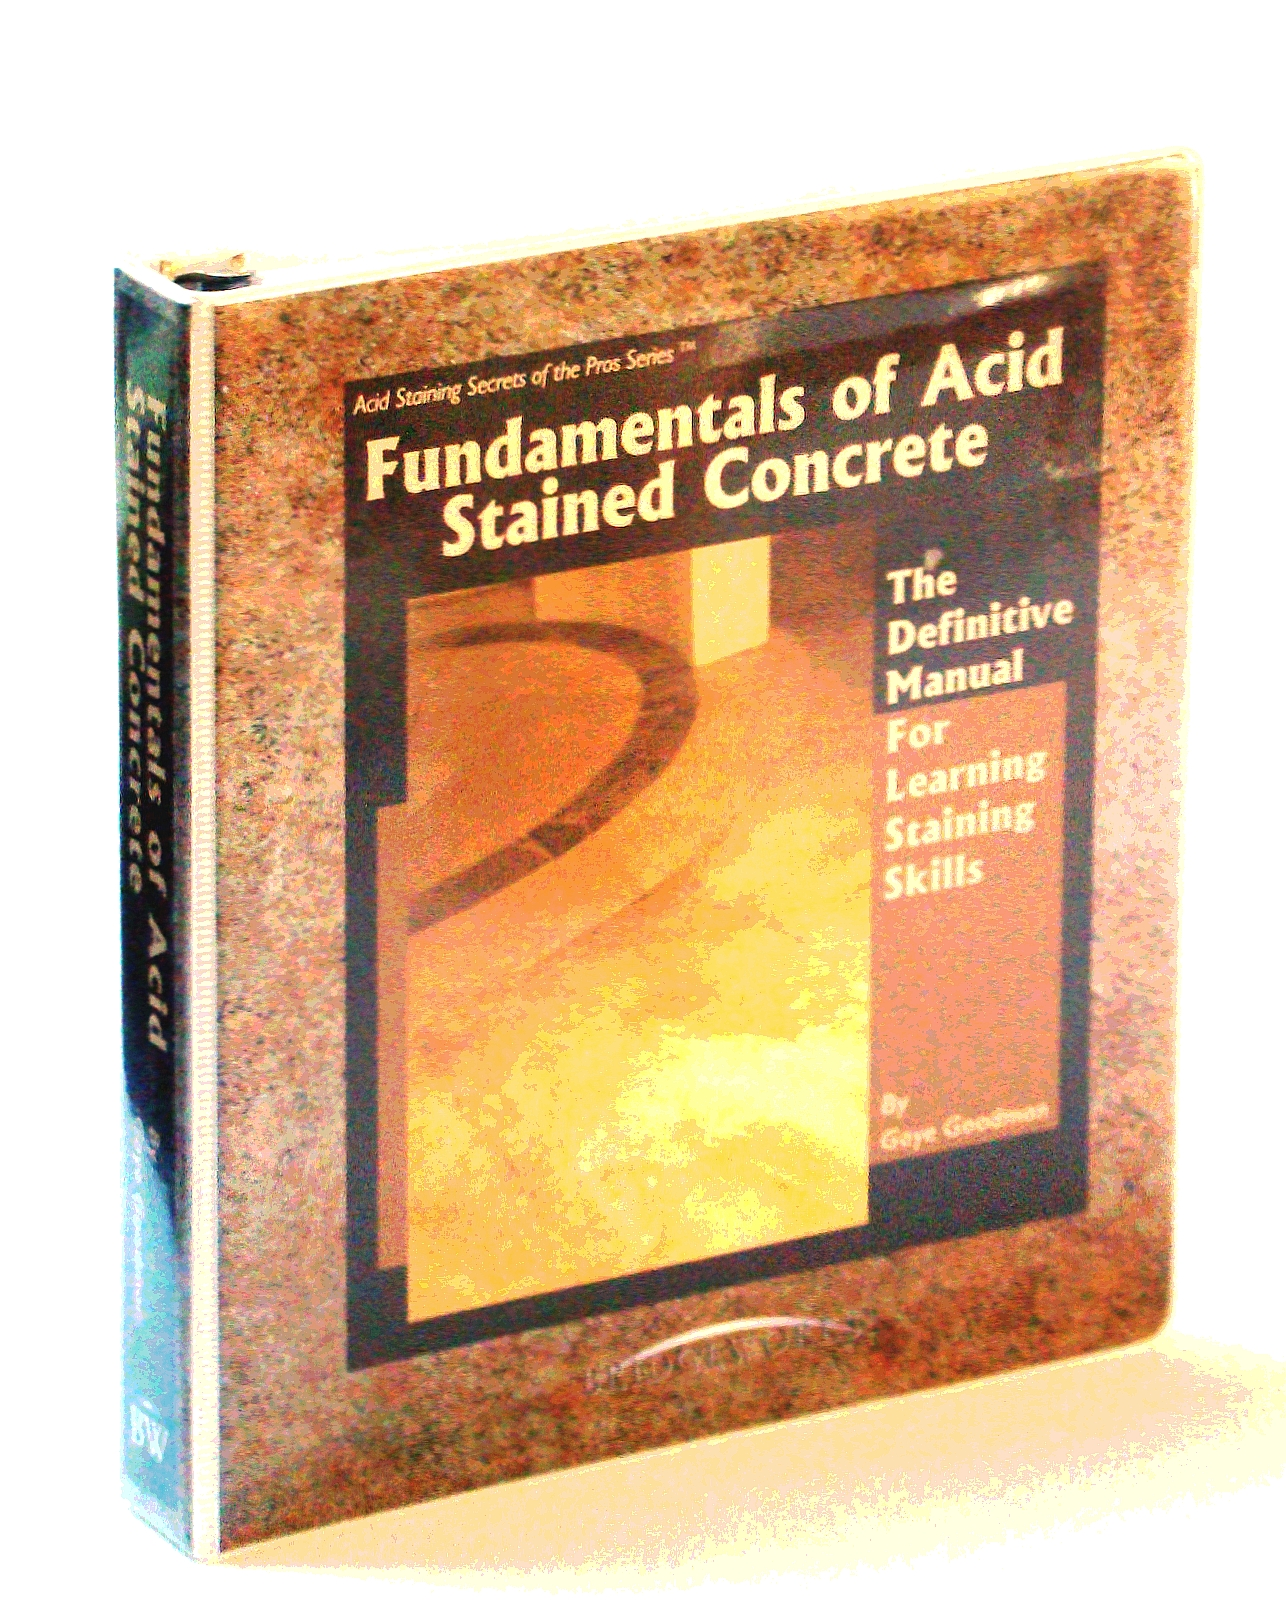 Fundamentals of Acid Stained Concrete